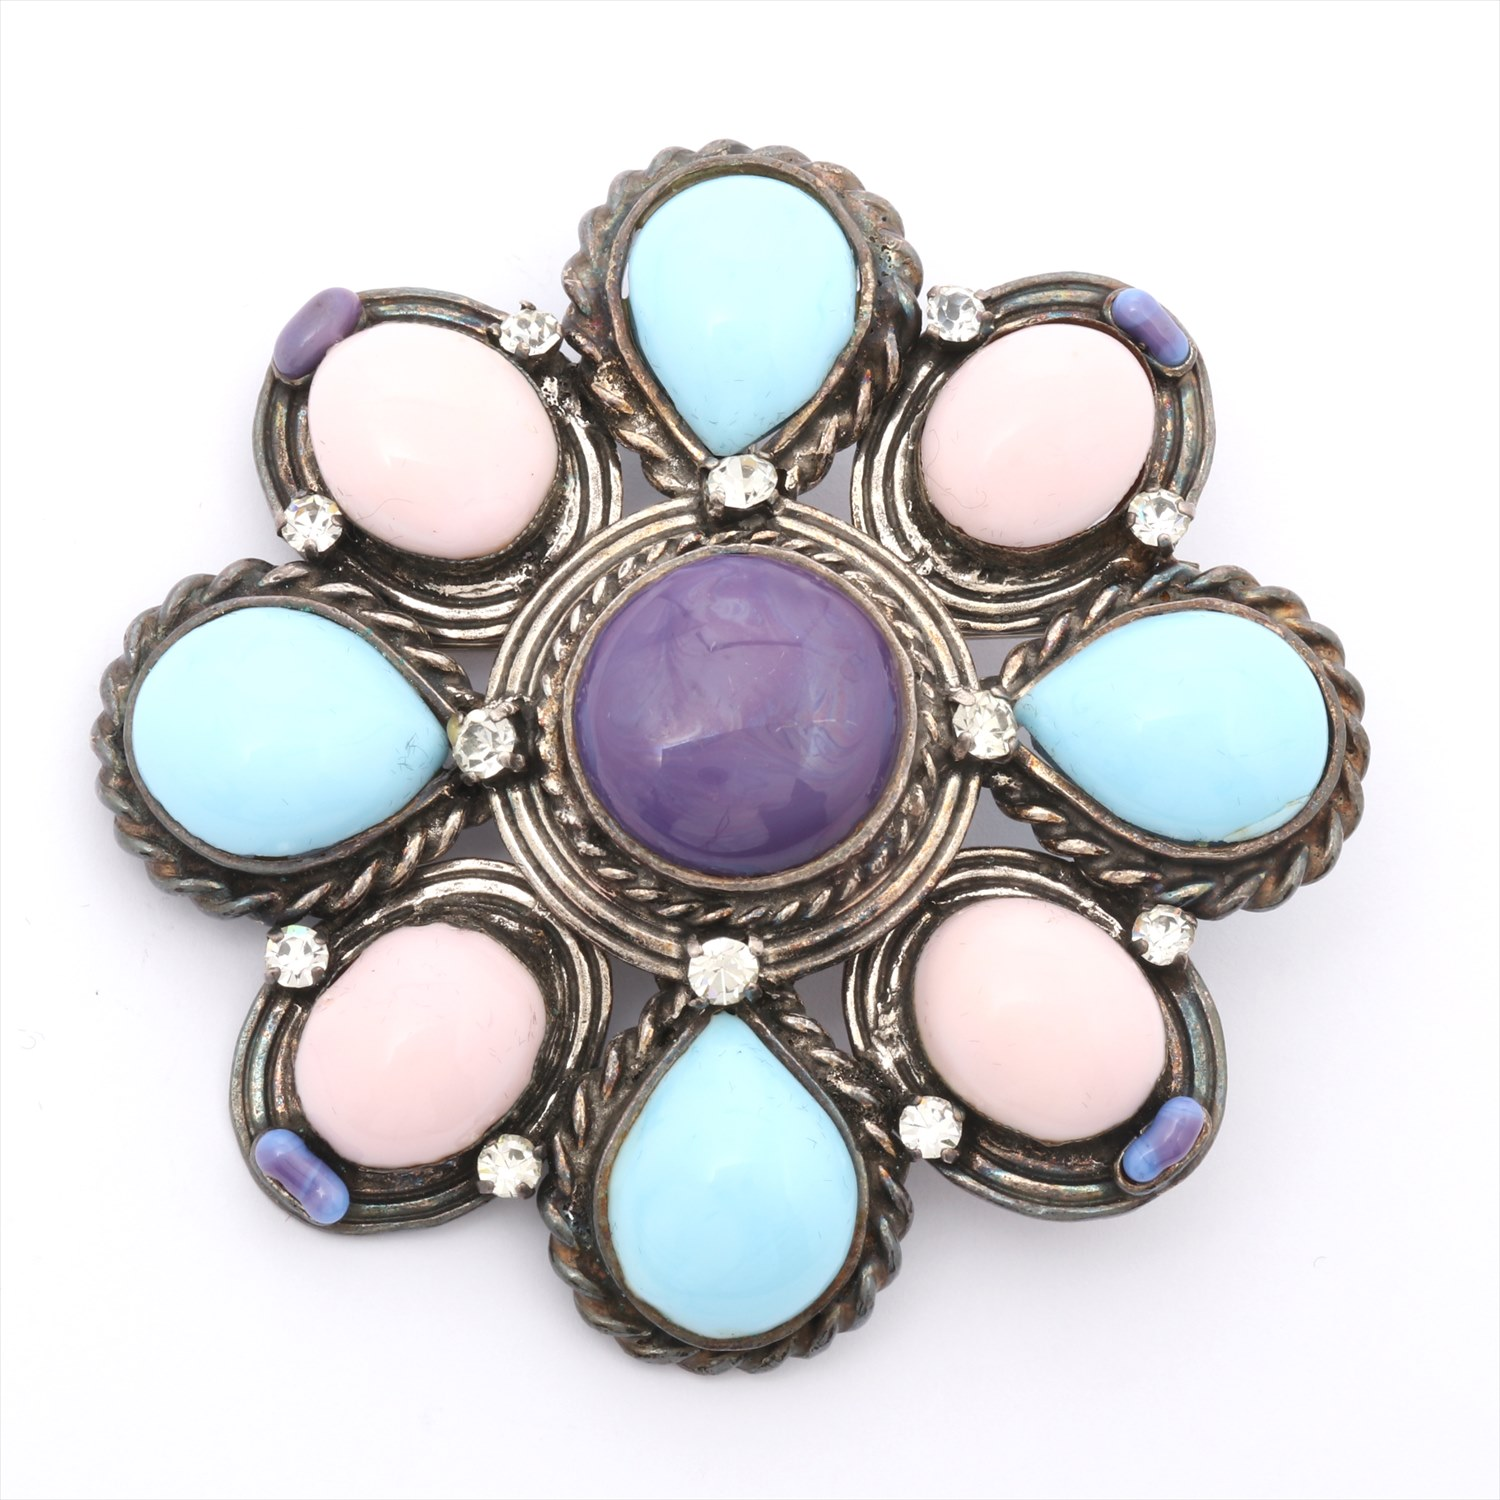 [Used goods] Chanel brooch color stone multi-color 96P